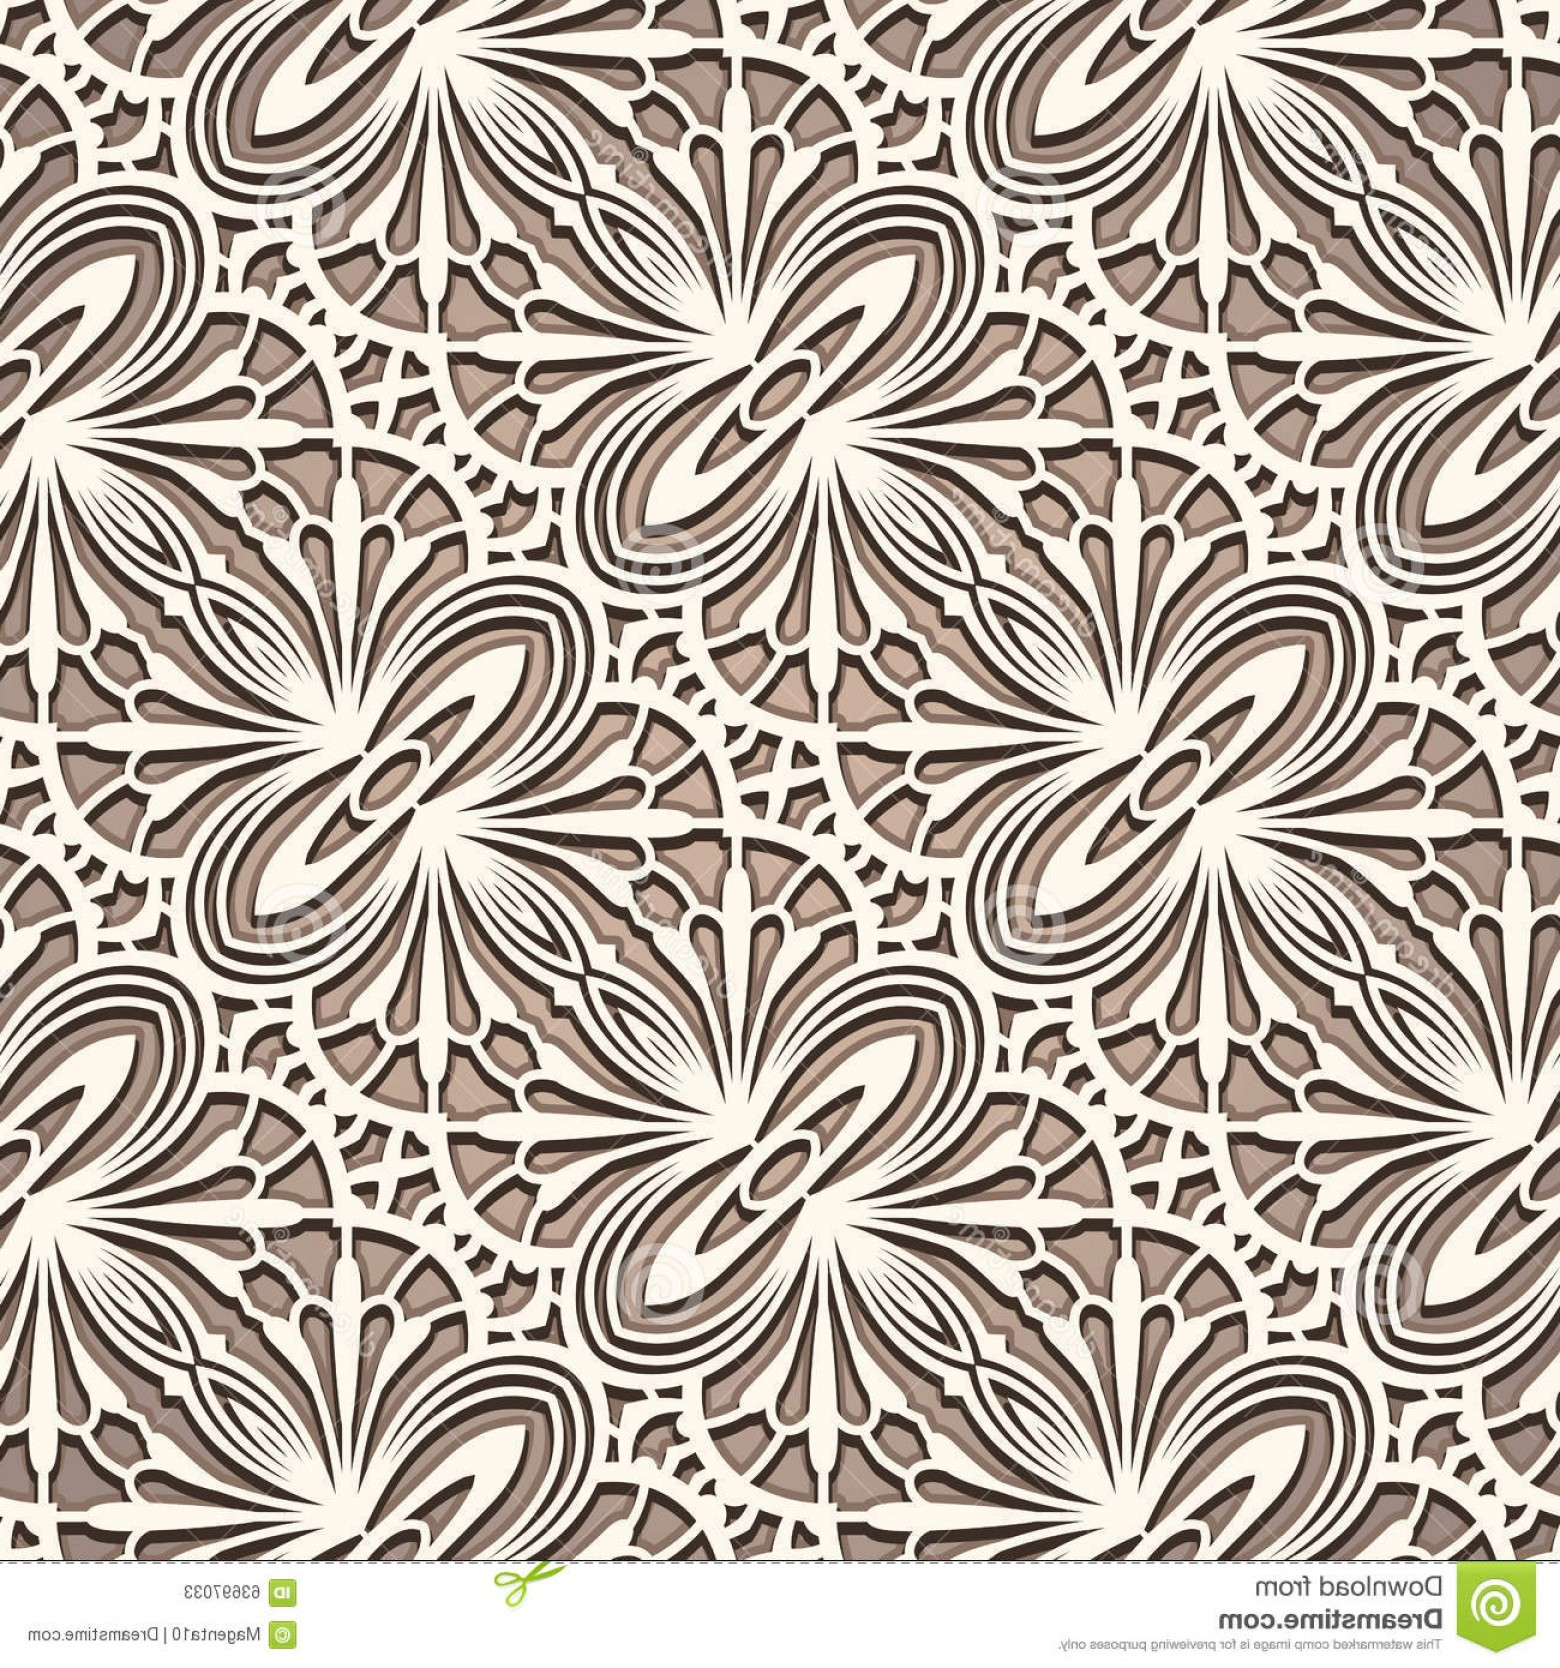 Tulle Black Lace Pattern Vector: Stock Illustration Vintage Tulle Ornament Seamless Lace Pattern Lacy Texture Embroidery Ornamental Background Image